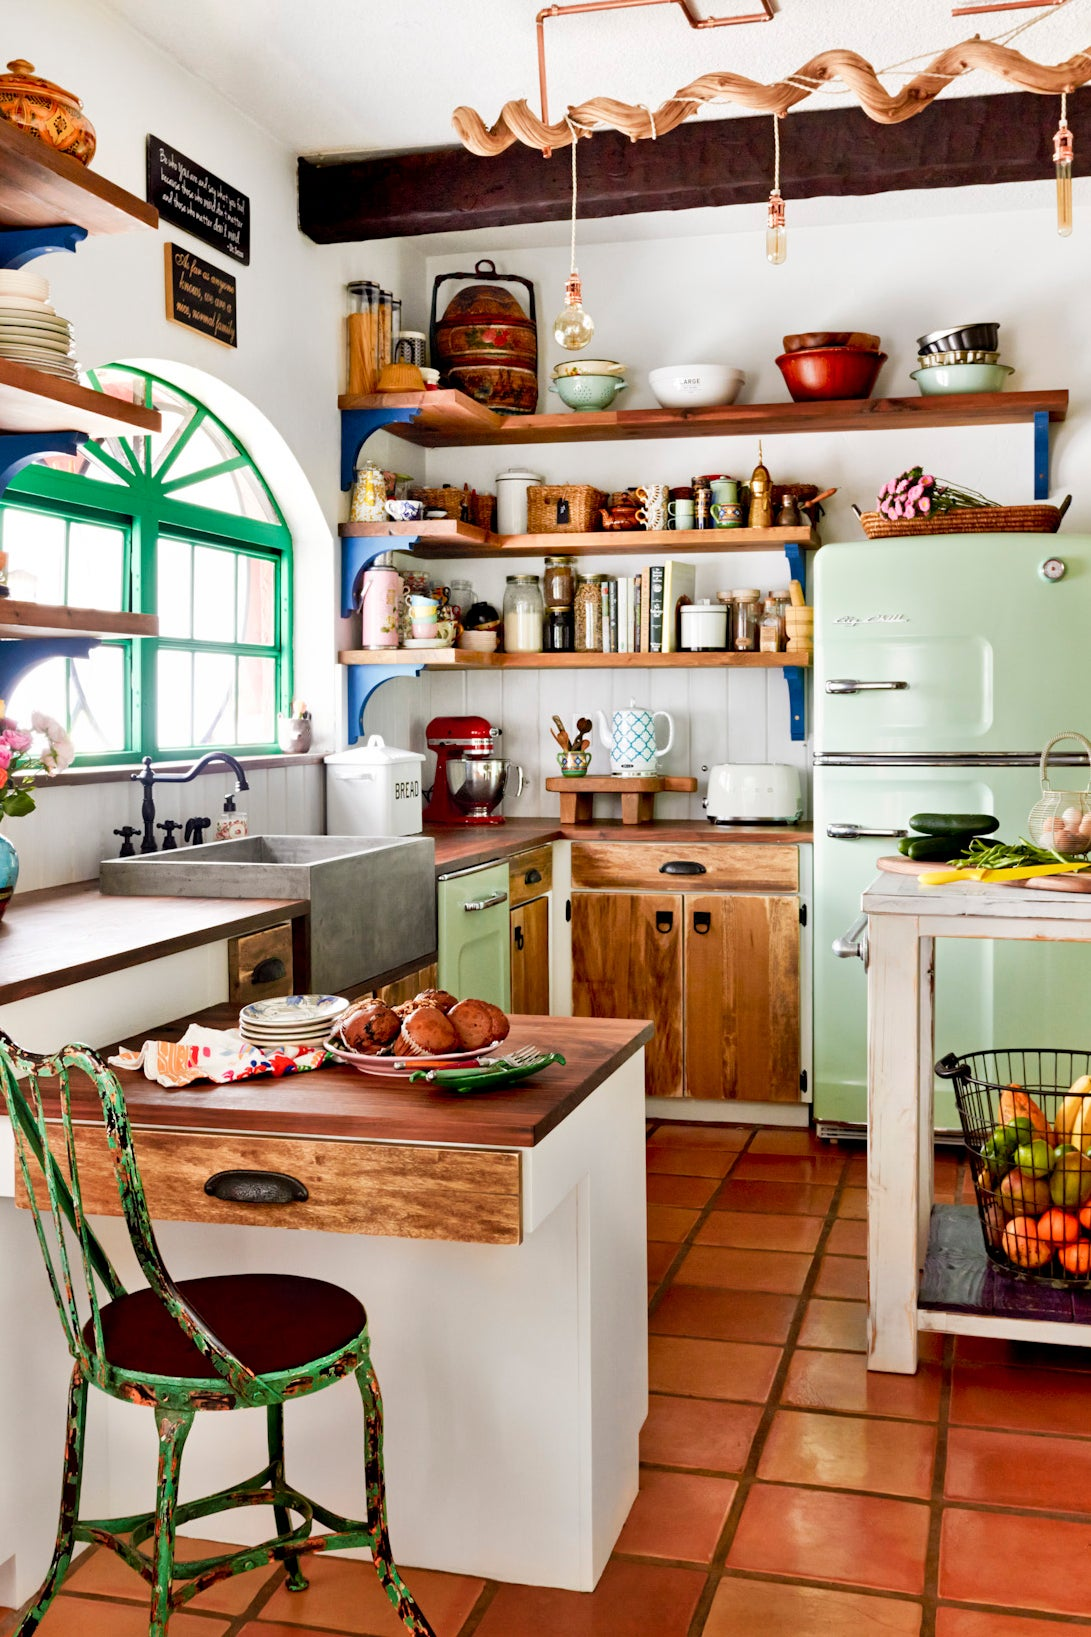 eclectic kitchen with green fridge and wooden cabinets